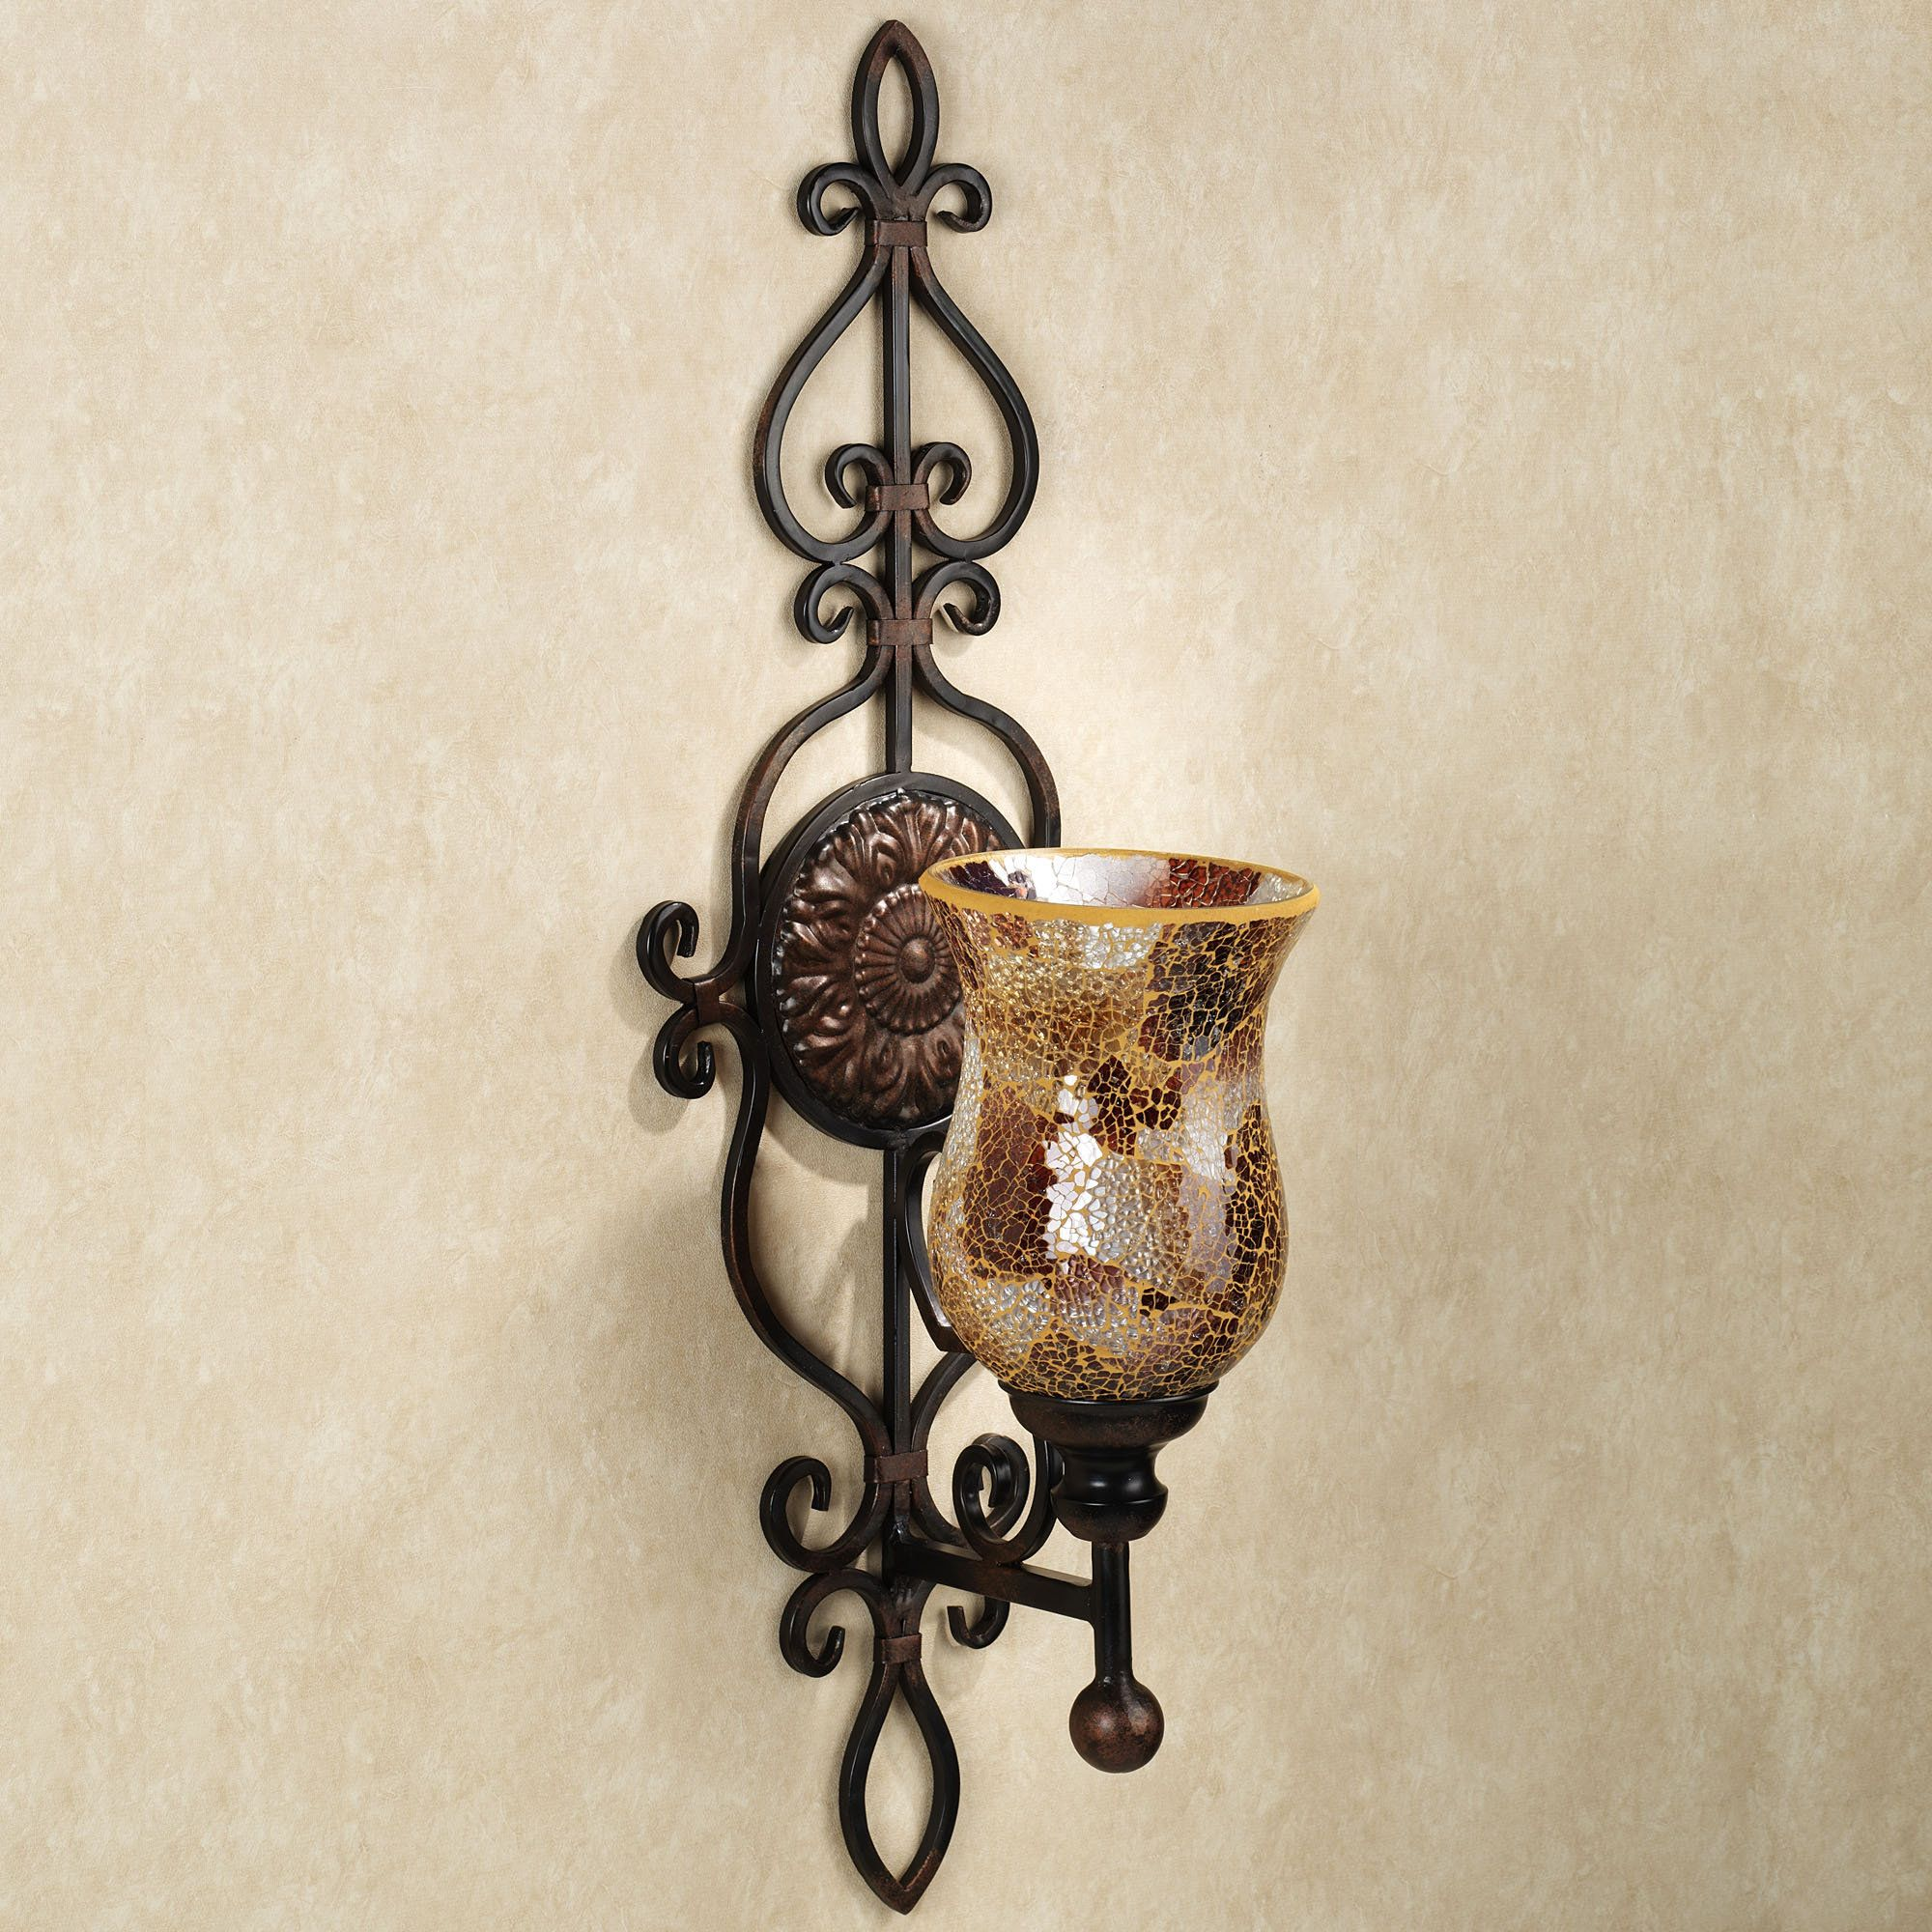 Leyanna Mosaic Aged Brown Wall Sconce Pair   Sconces, Iron ... on Decorative Wall Sconces Candle Holders Chrome id=45495